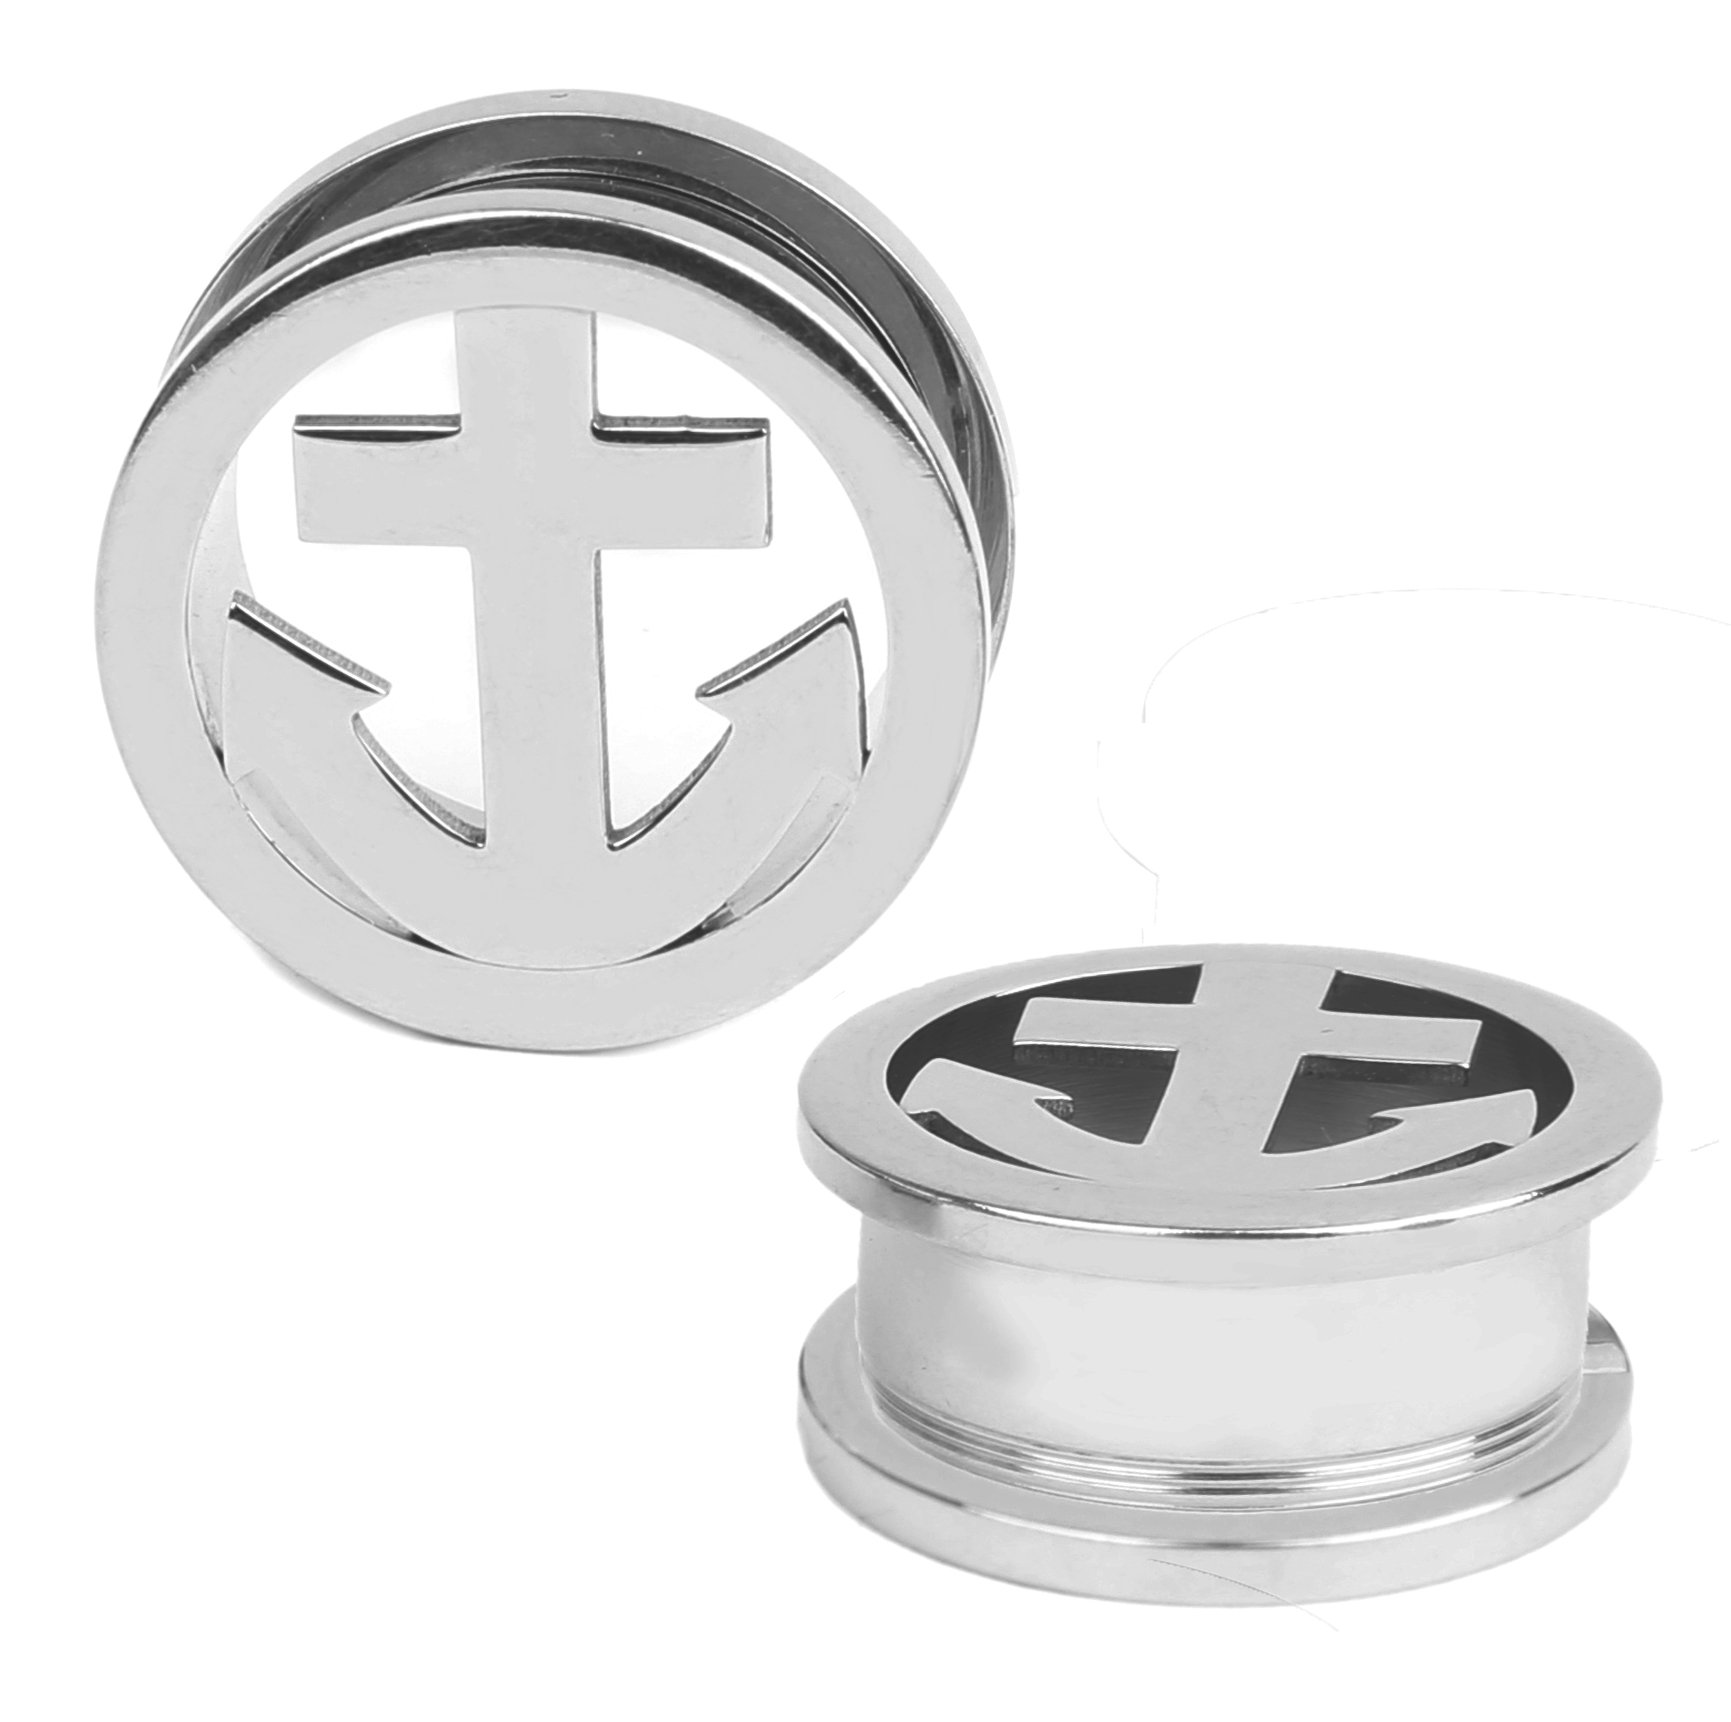 BodyJ4You Nautical Anchor Plugs Stainless Steel Screw Fit Flesh Tunnel 2 Gauge - 22mm - 1 Pair